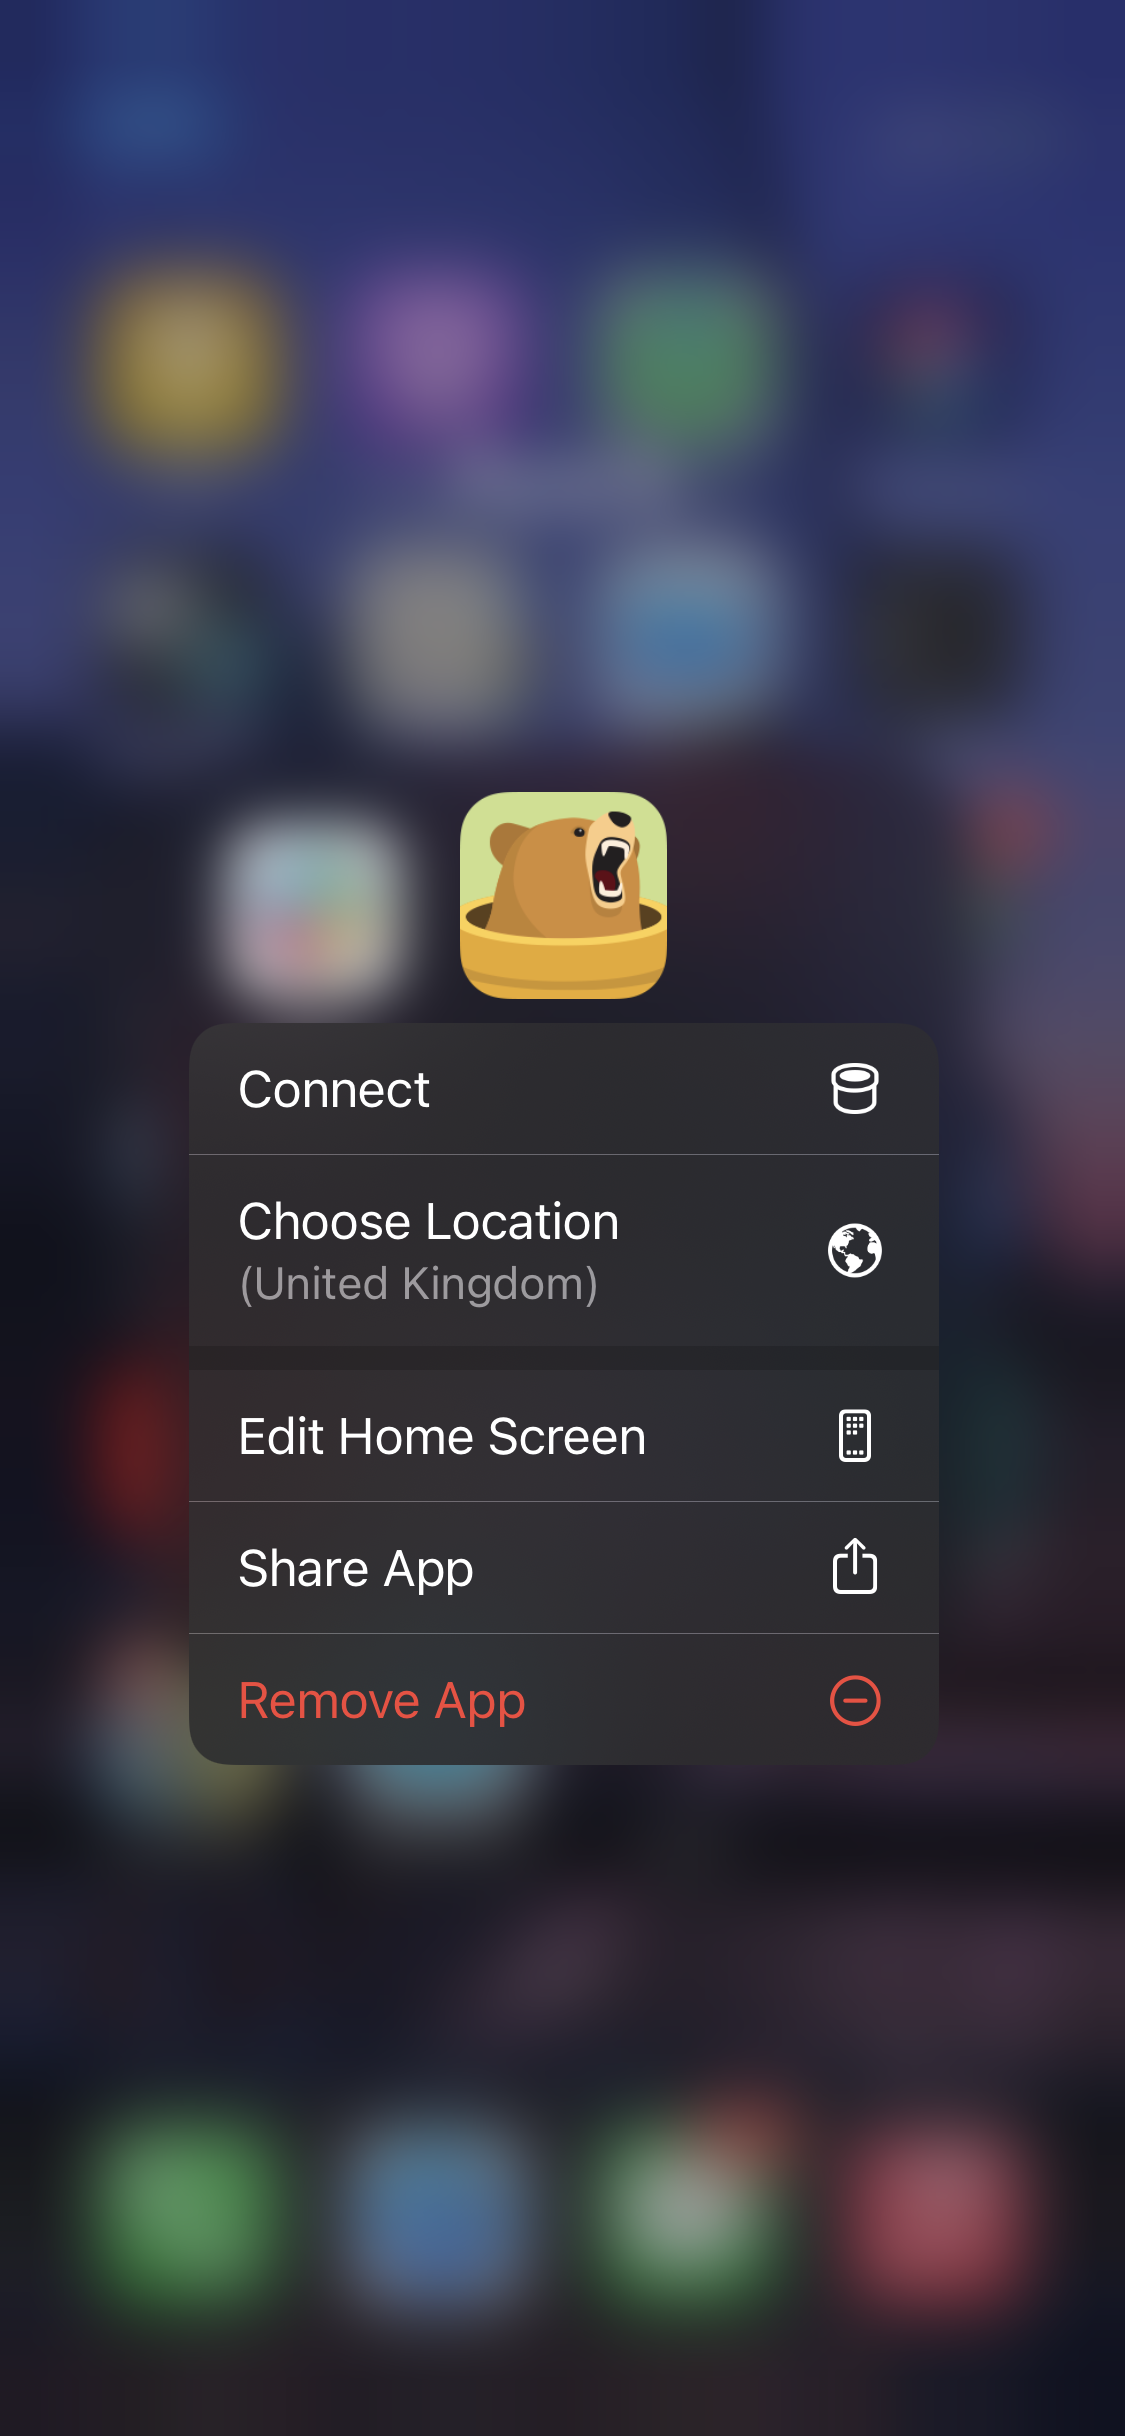 How to Hide Apps on iPhone? [4 Ways] Smart Things